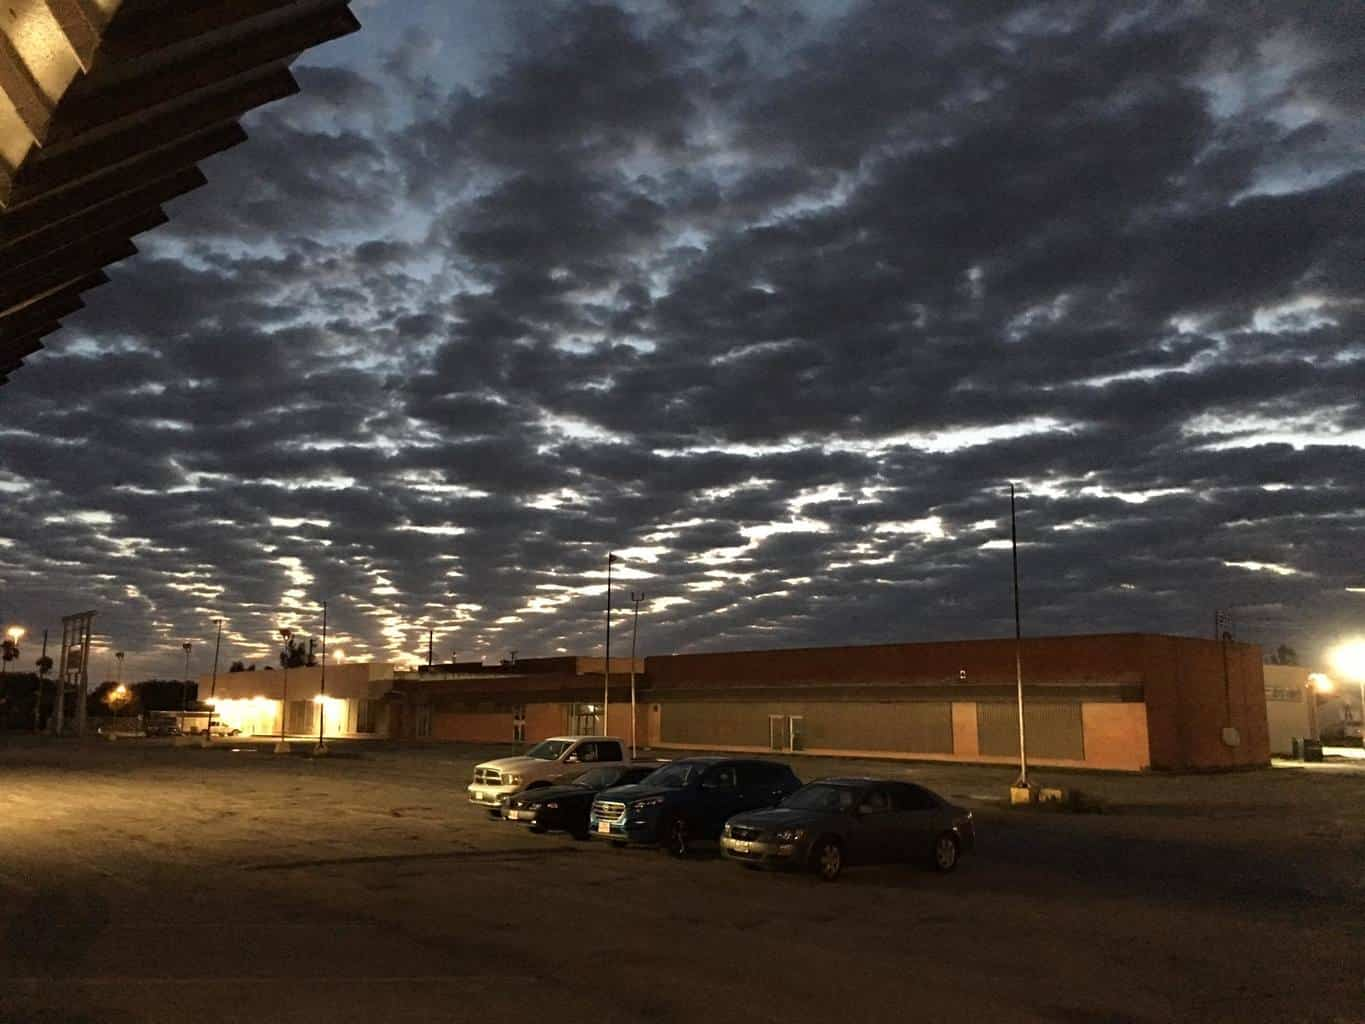 Going in to work on a server this morning and was greeted with this nice sunrise. Would have made a nice time lapse.